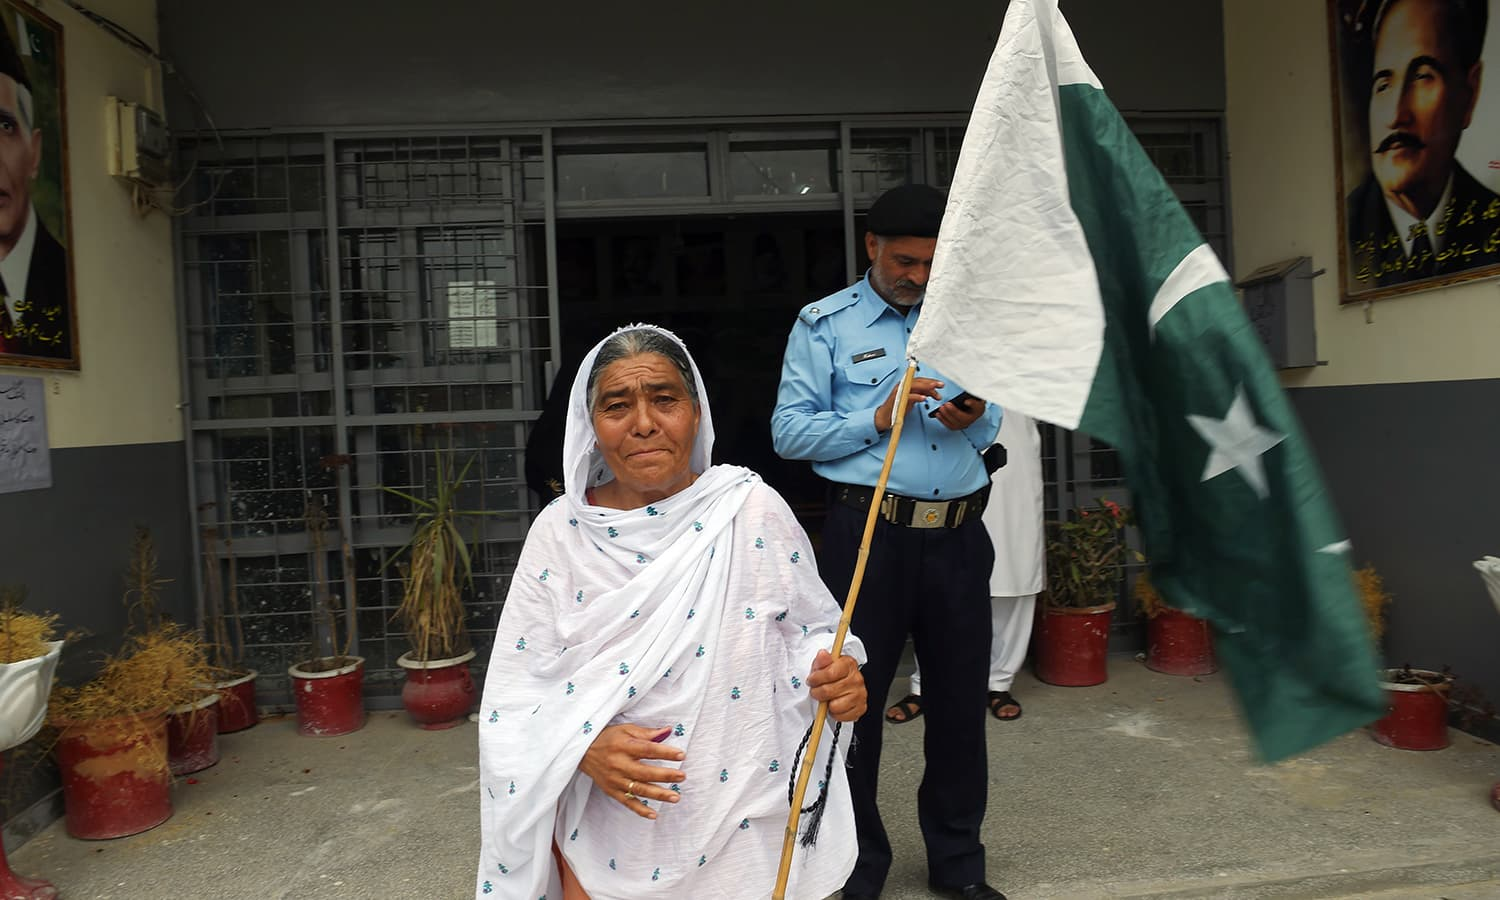 A woman walks out of a polling station holding Pakistan's national flag after casting her ballot in Rawalpindi. — AFP